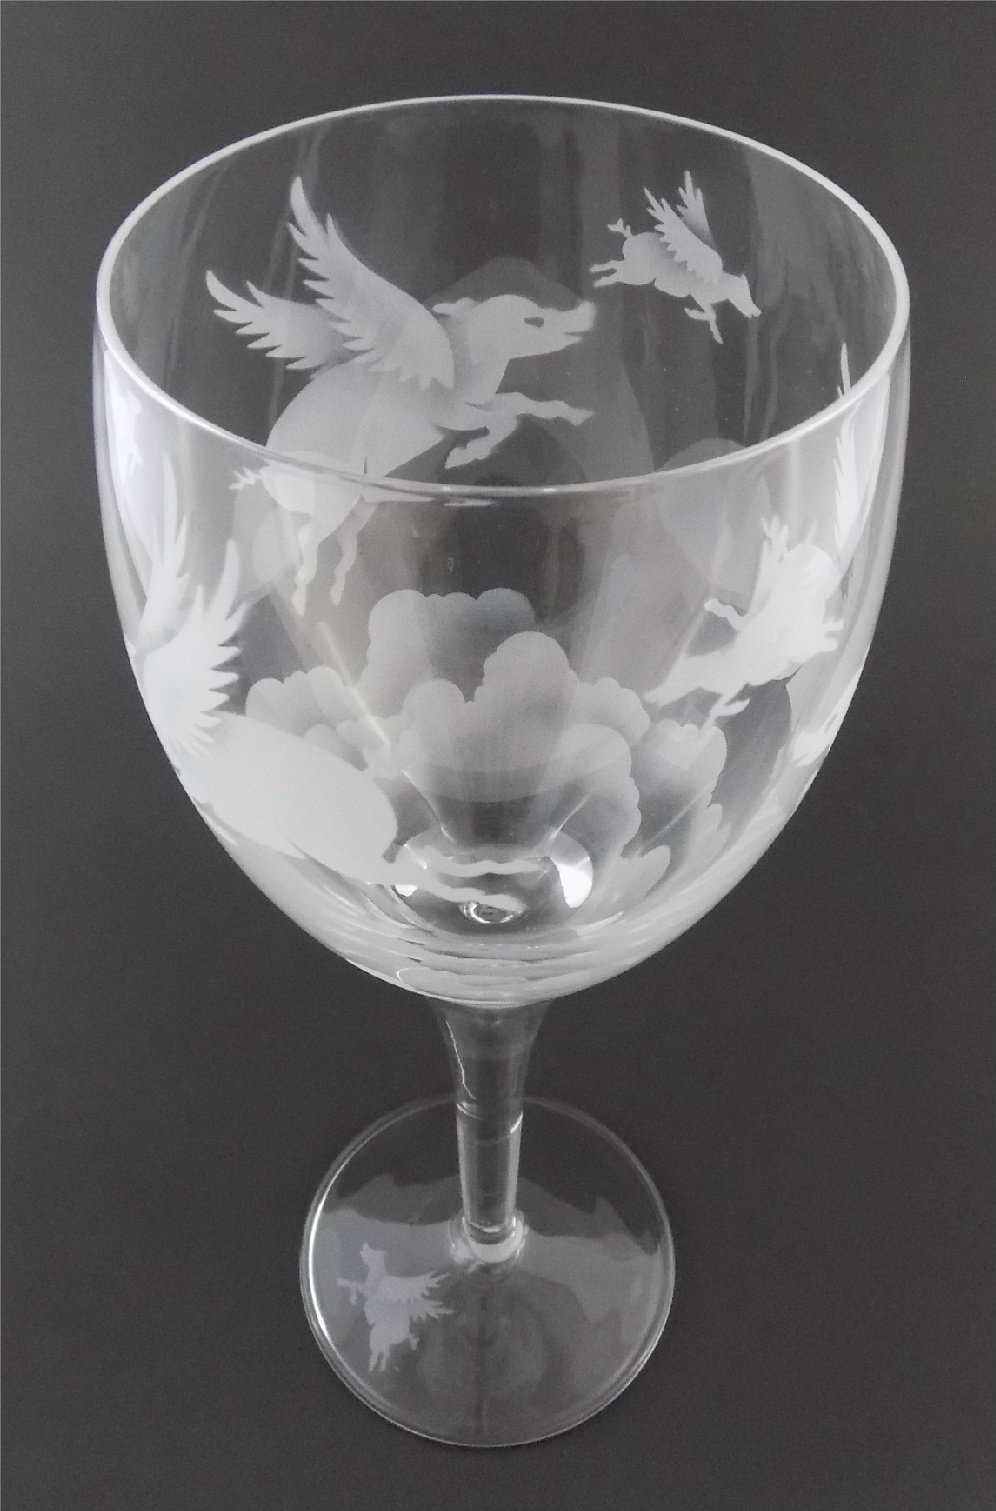 IncisoArt Hand Etched Italian Crystal Goblet Sandblasted (Sand Carved) Handmade Wine Water Glass Engraved (Pigs Flying Over Clouds, 340 Milliliter (11.5 Ounce) White Wine)